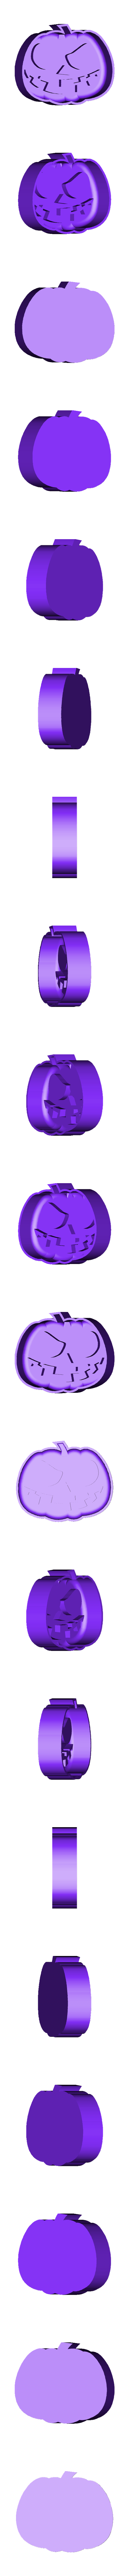 Pumpkin-2.stl Download free STL file Scary Halloween Pumpkin Molds • 3D printable design, crzldesign